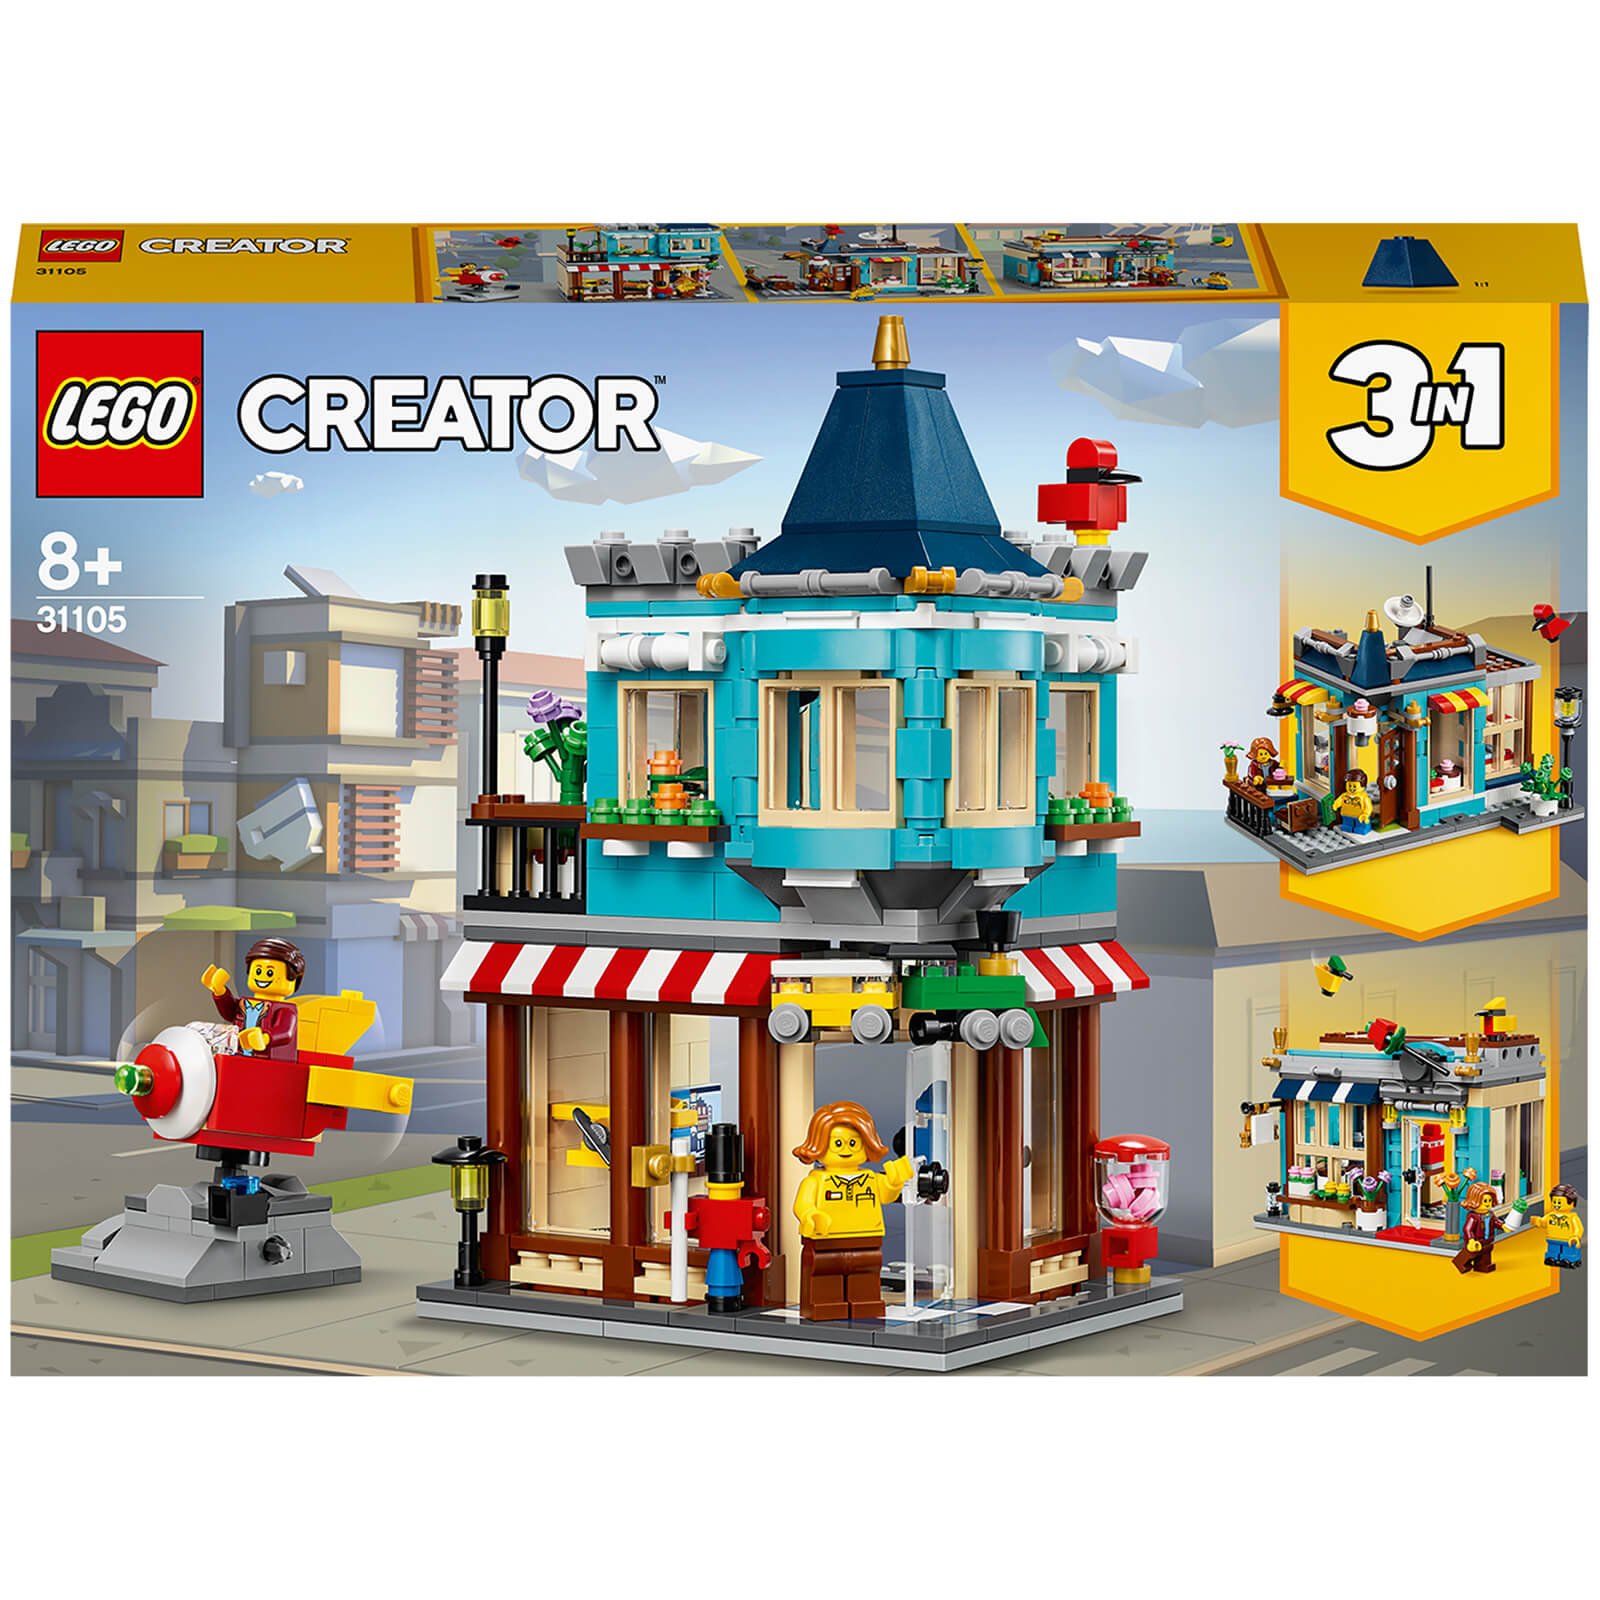 Image of 31105 LEGO® CREATOR Toy store in town house